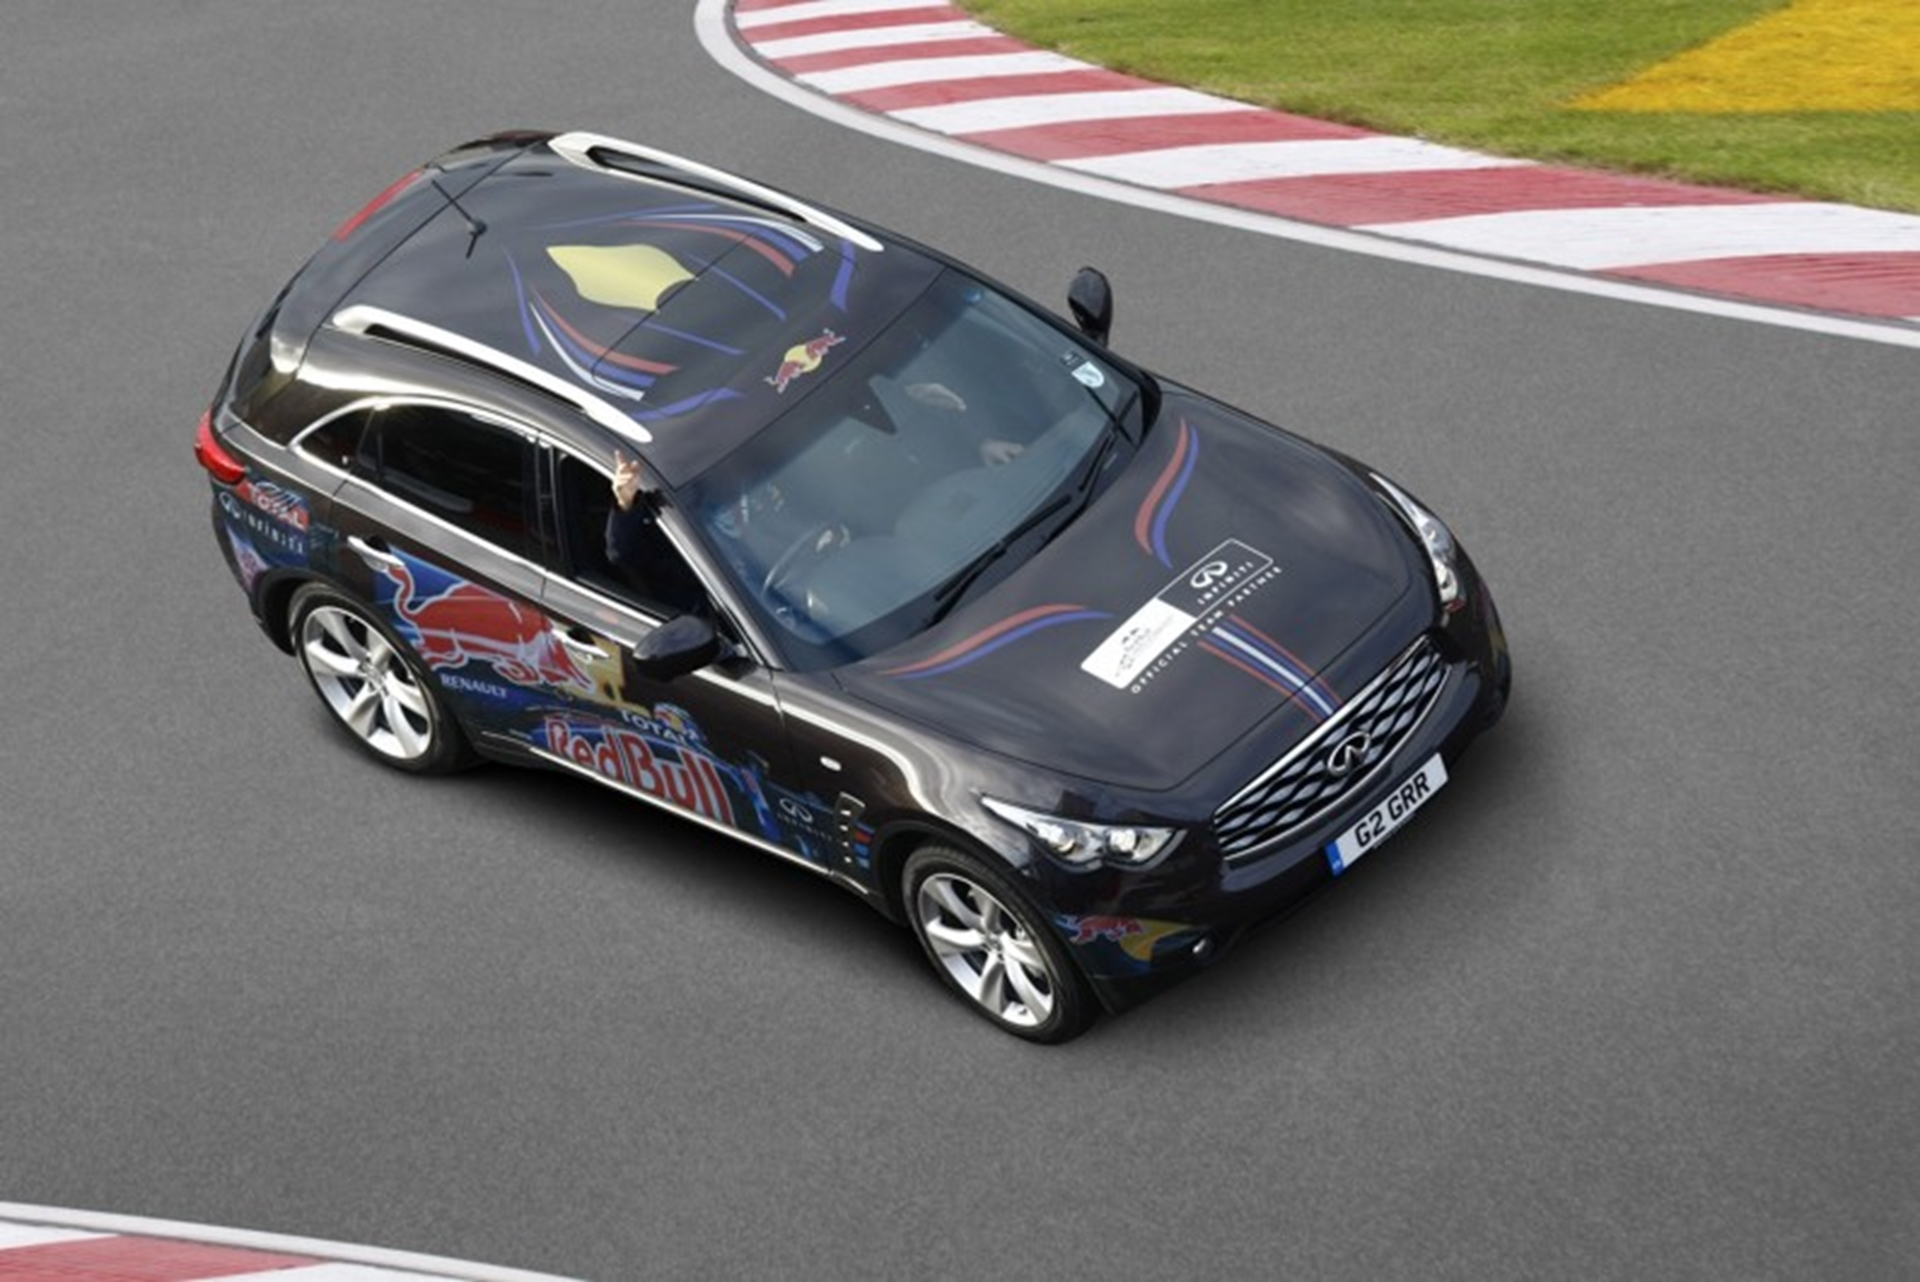 Test-drive an Infinti to the Spanish Grand Prix